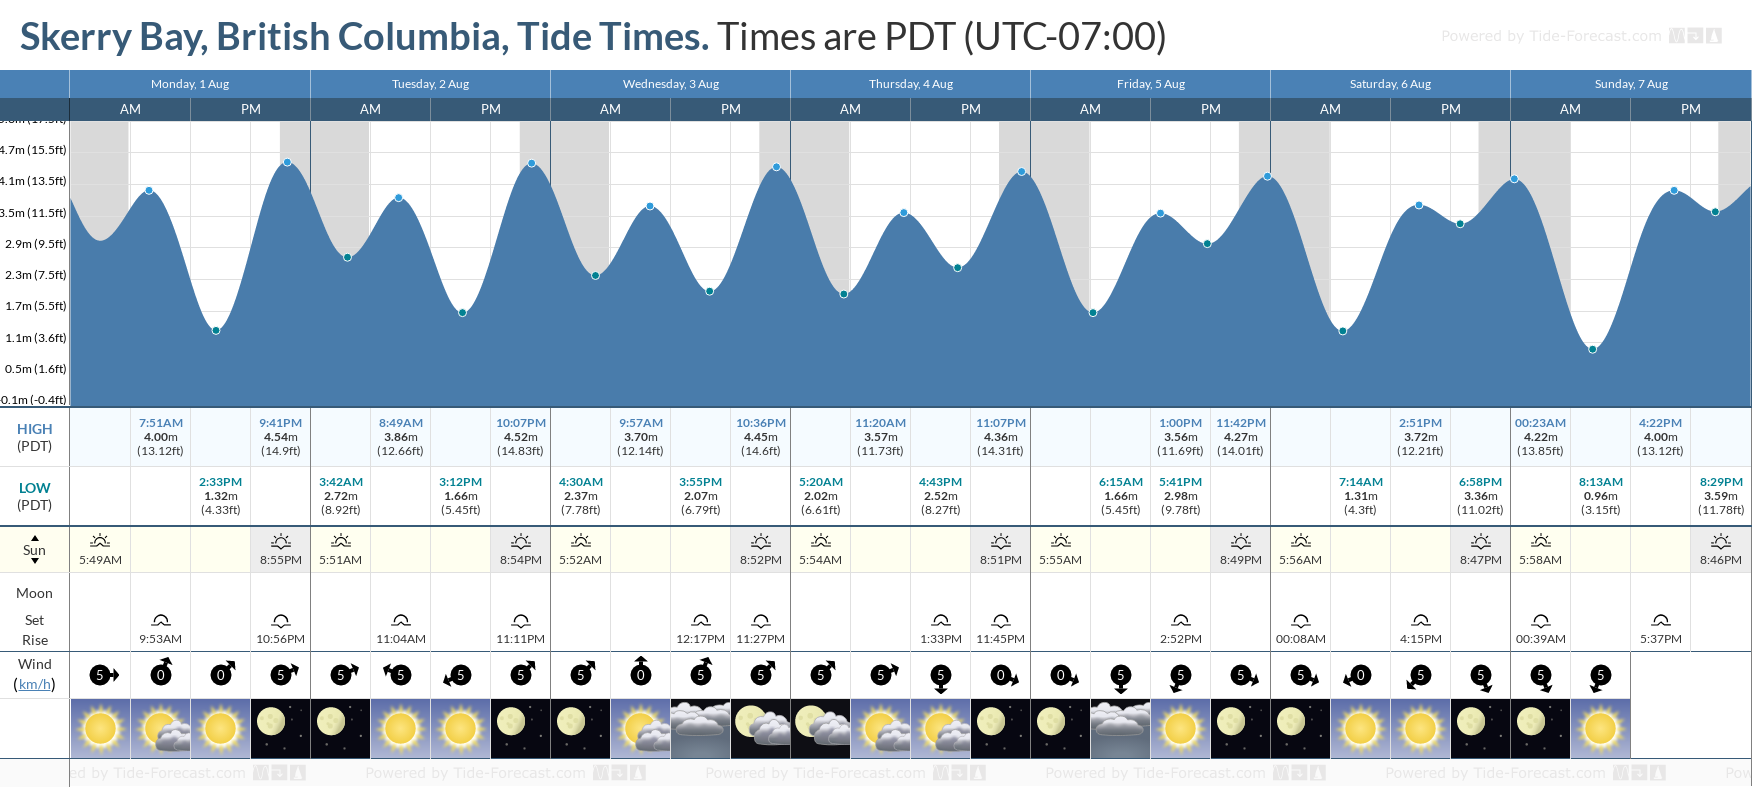 Skerry Bay, British Columbia Tide Chart including high and low tide tide times for the next 7 days